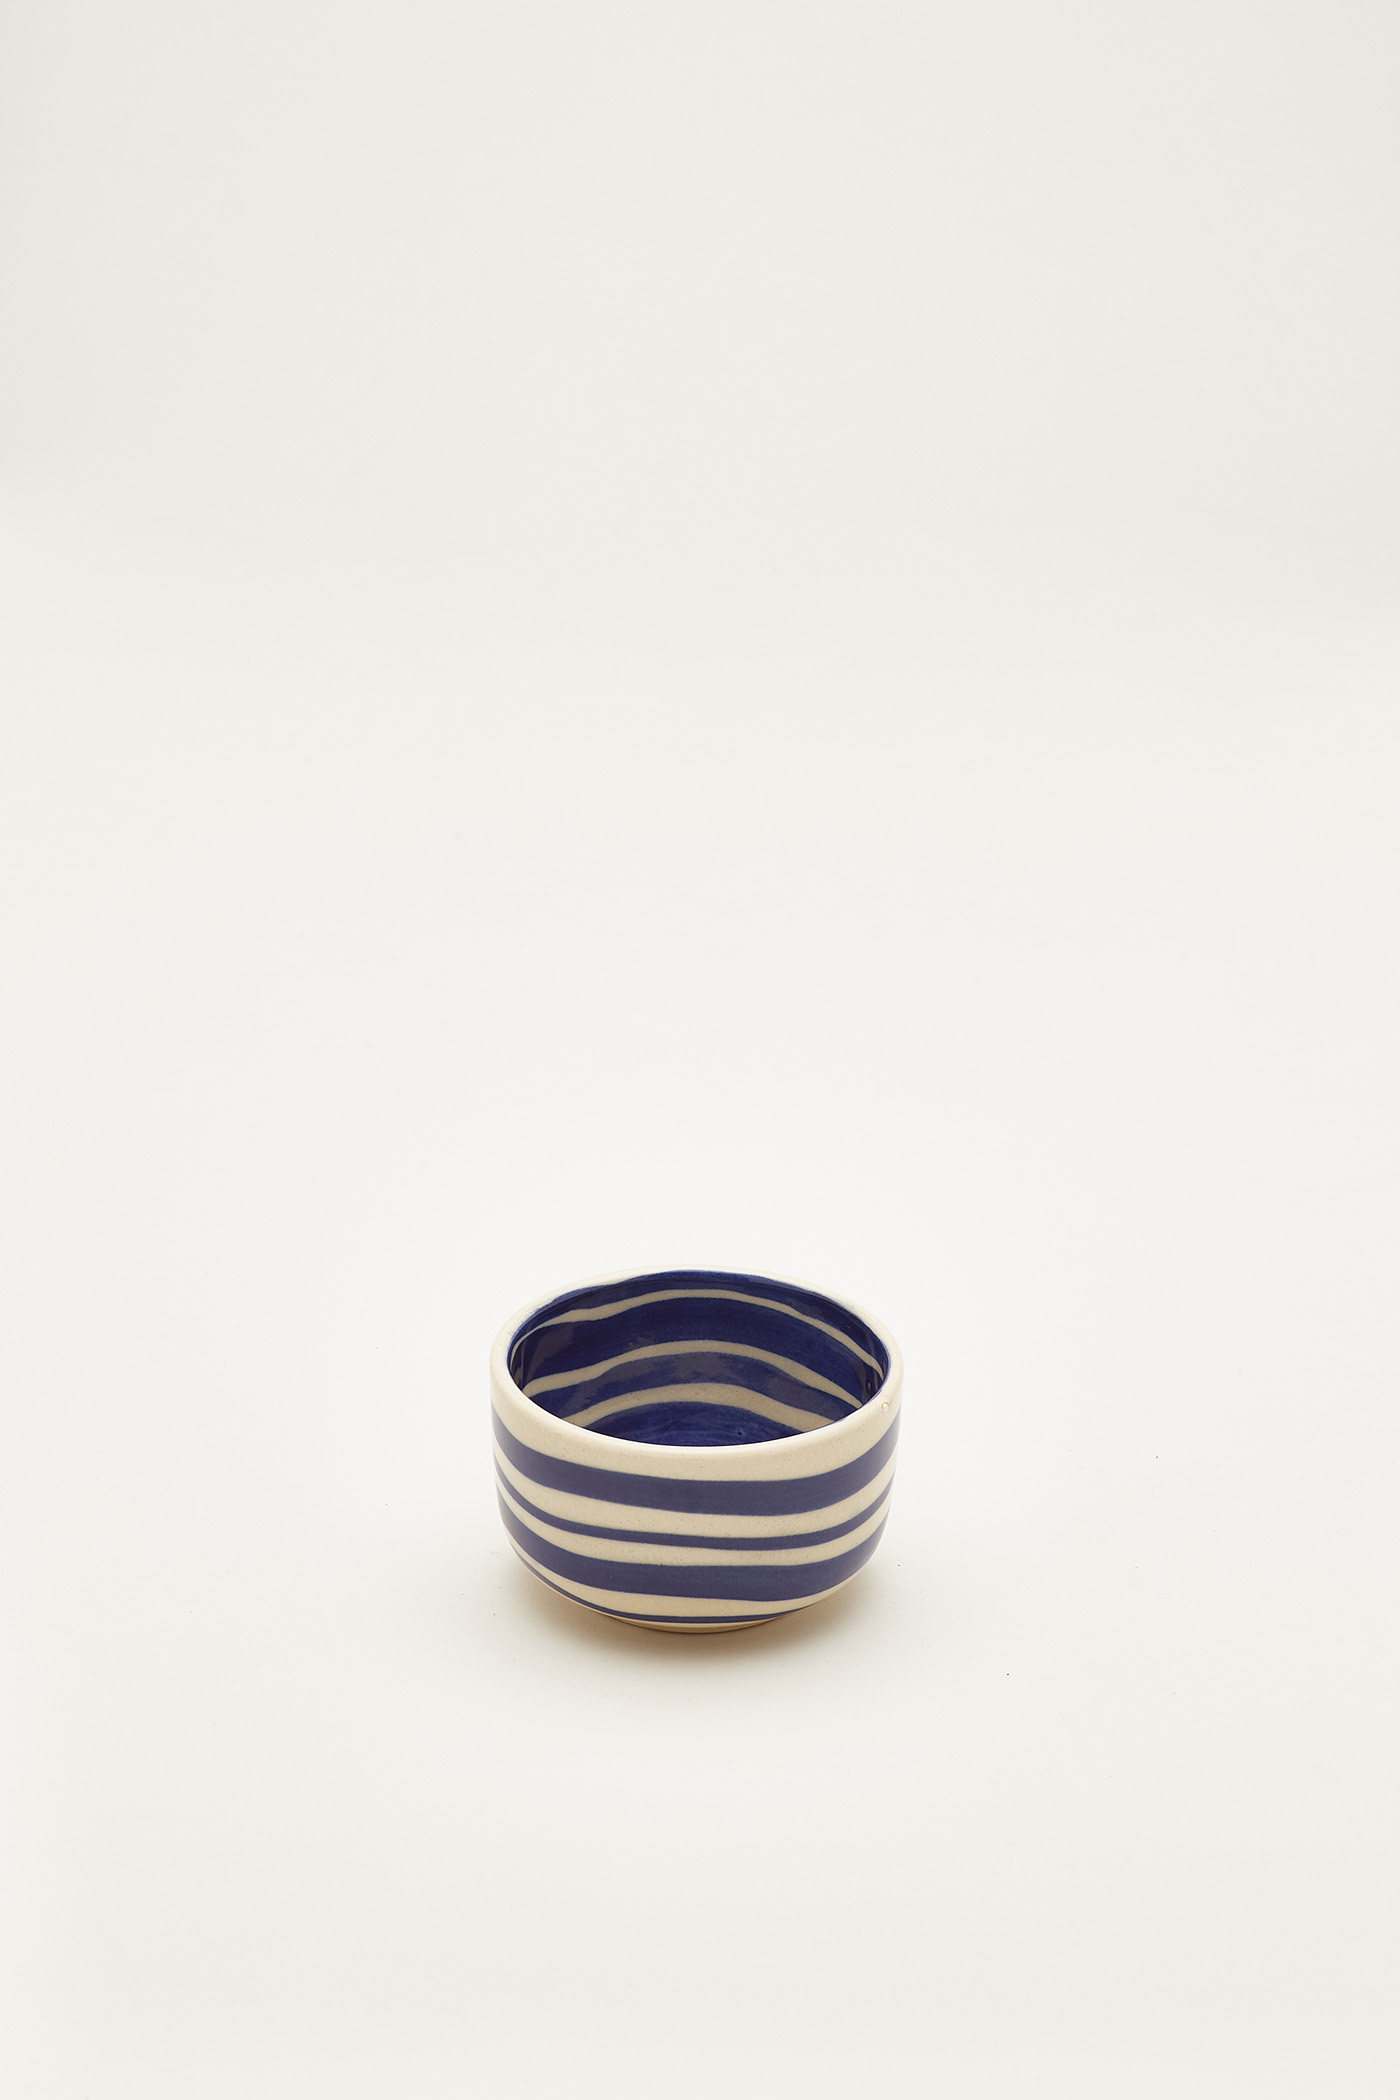 Tuhu Ceramics Small Cereal Bowl